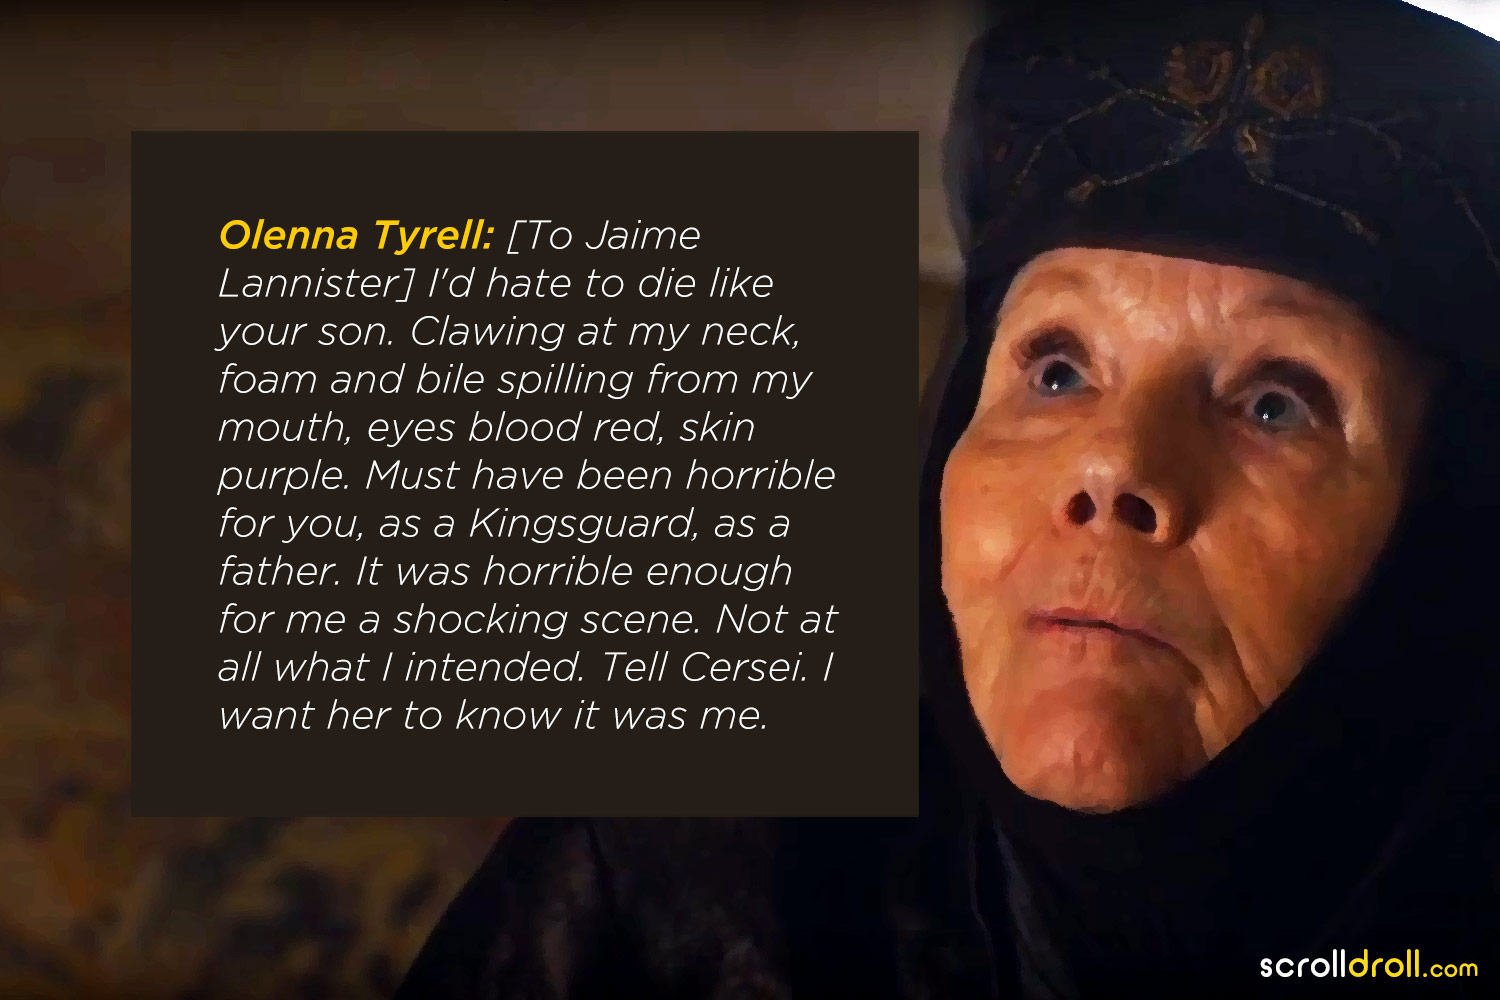 Citate Fotografie Queen : Most badass quotes from olenna tyrell the queen of sass